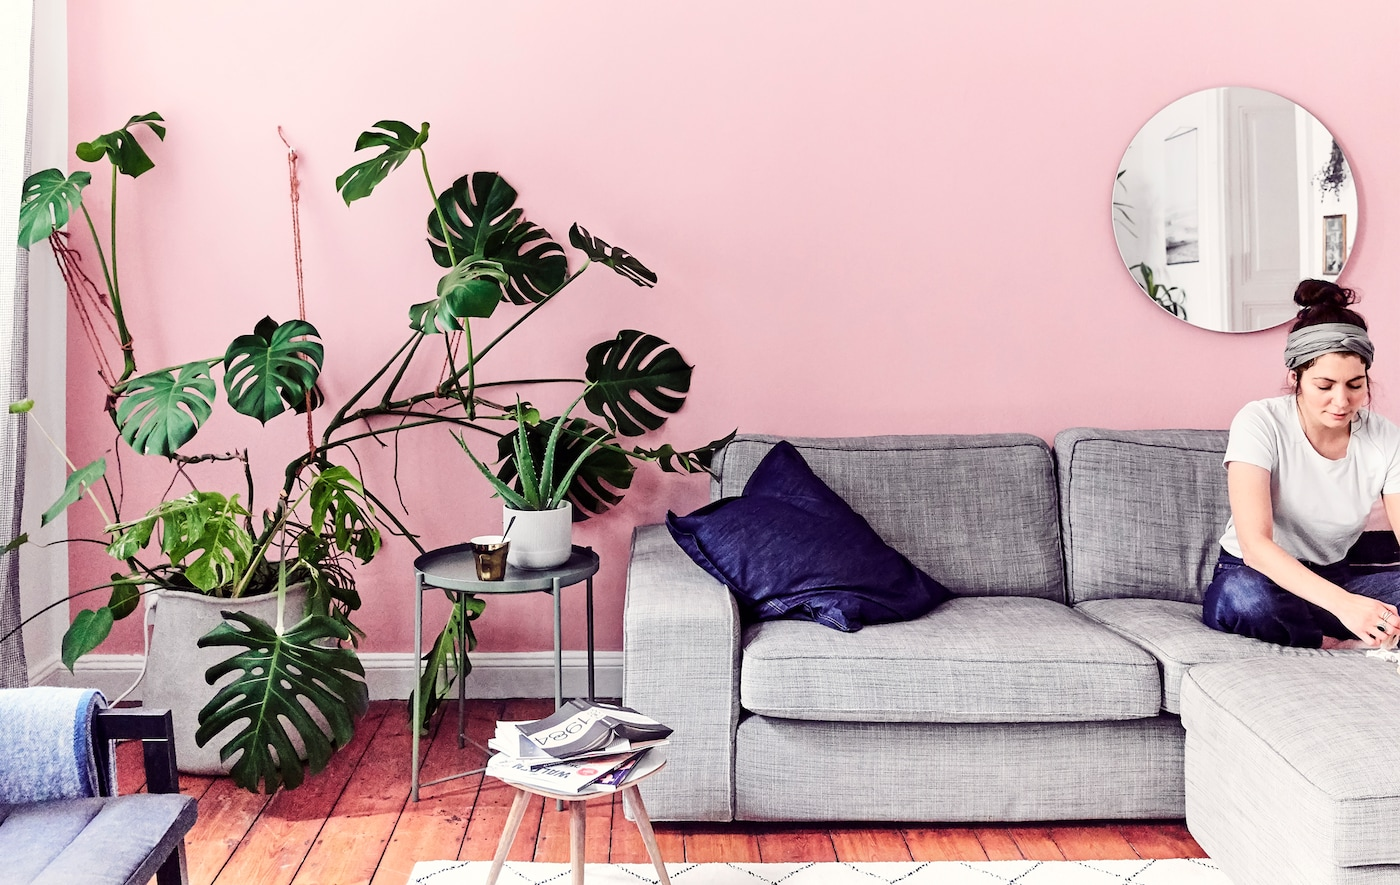 Julia sitting on a gray sofa in a living room with a pink wall and large monstera plant.